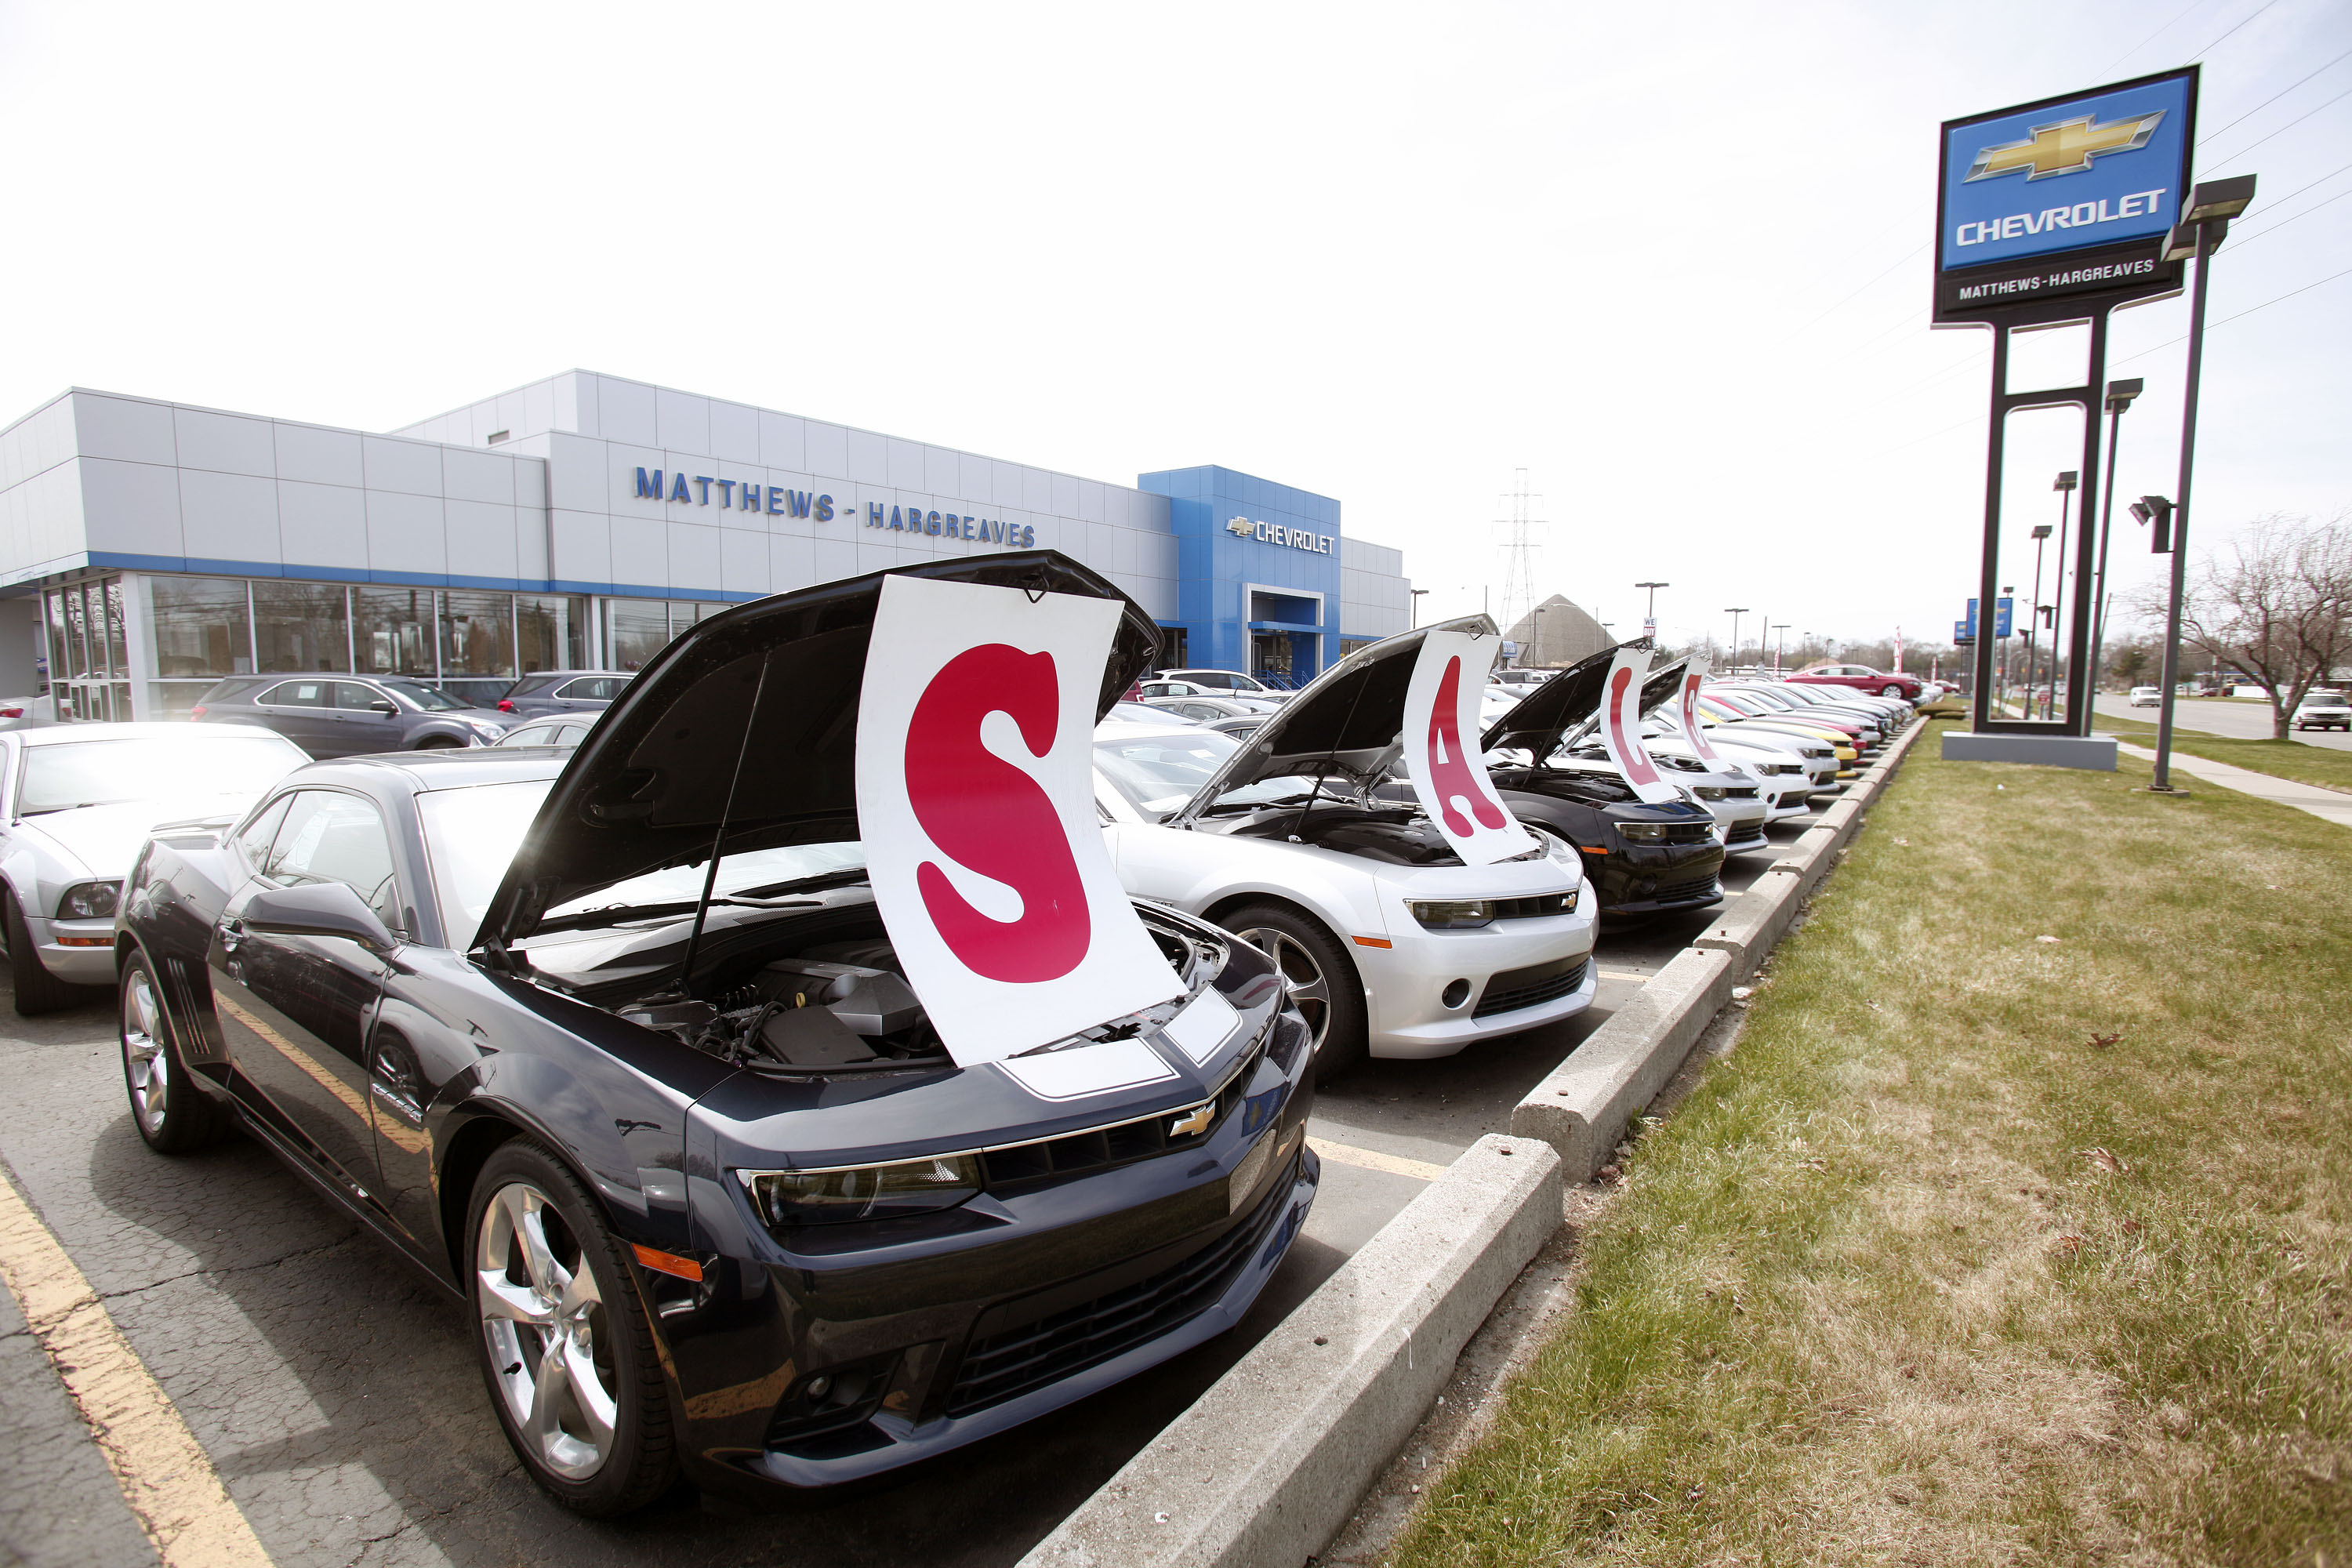 A General Motors Chevrolet dealership is shown April 24, 2014 in Royal Oak, Michigan